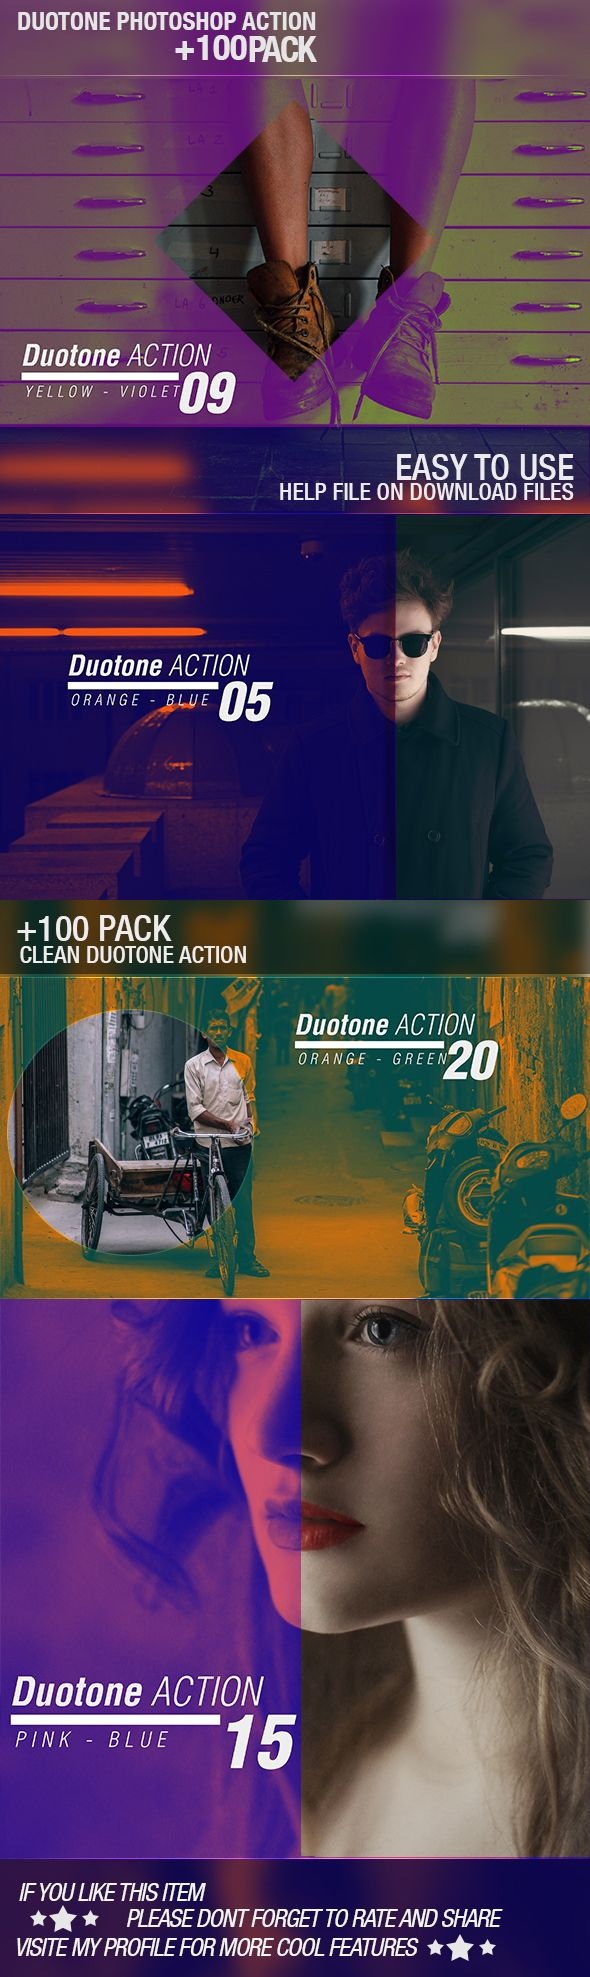 Add +100 completely different trending Duotone effects to your photos. Takes only a single click. Non-destructive Workflow. High quality result. Detailed help/Instructions PDF file included. Completely experimented & tested. Easily editable & combinable effect. For Adobe Photoshop